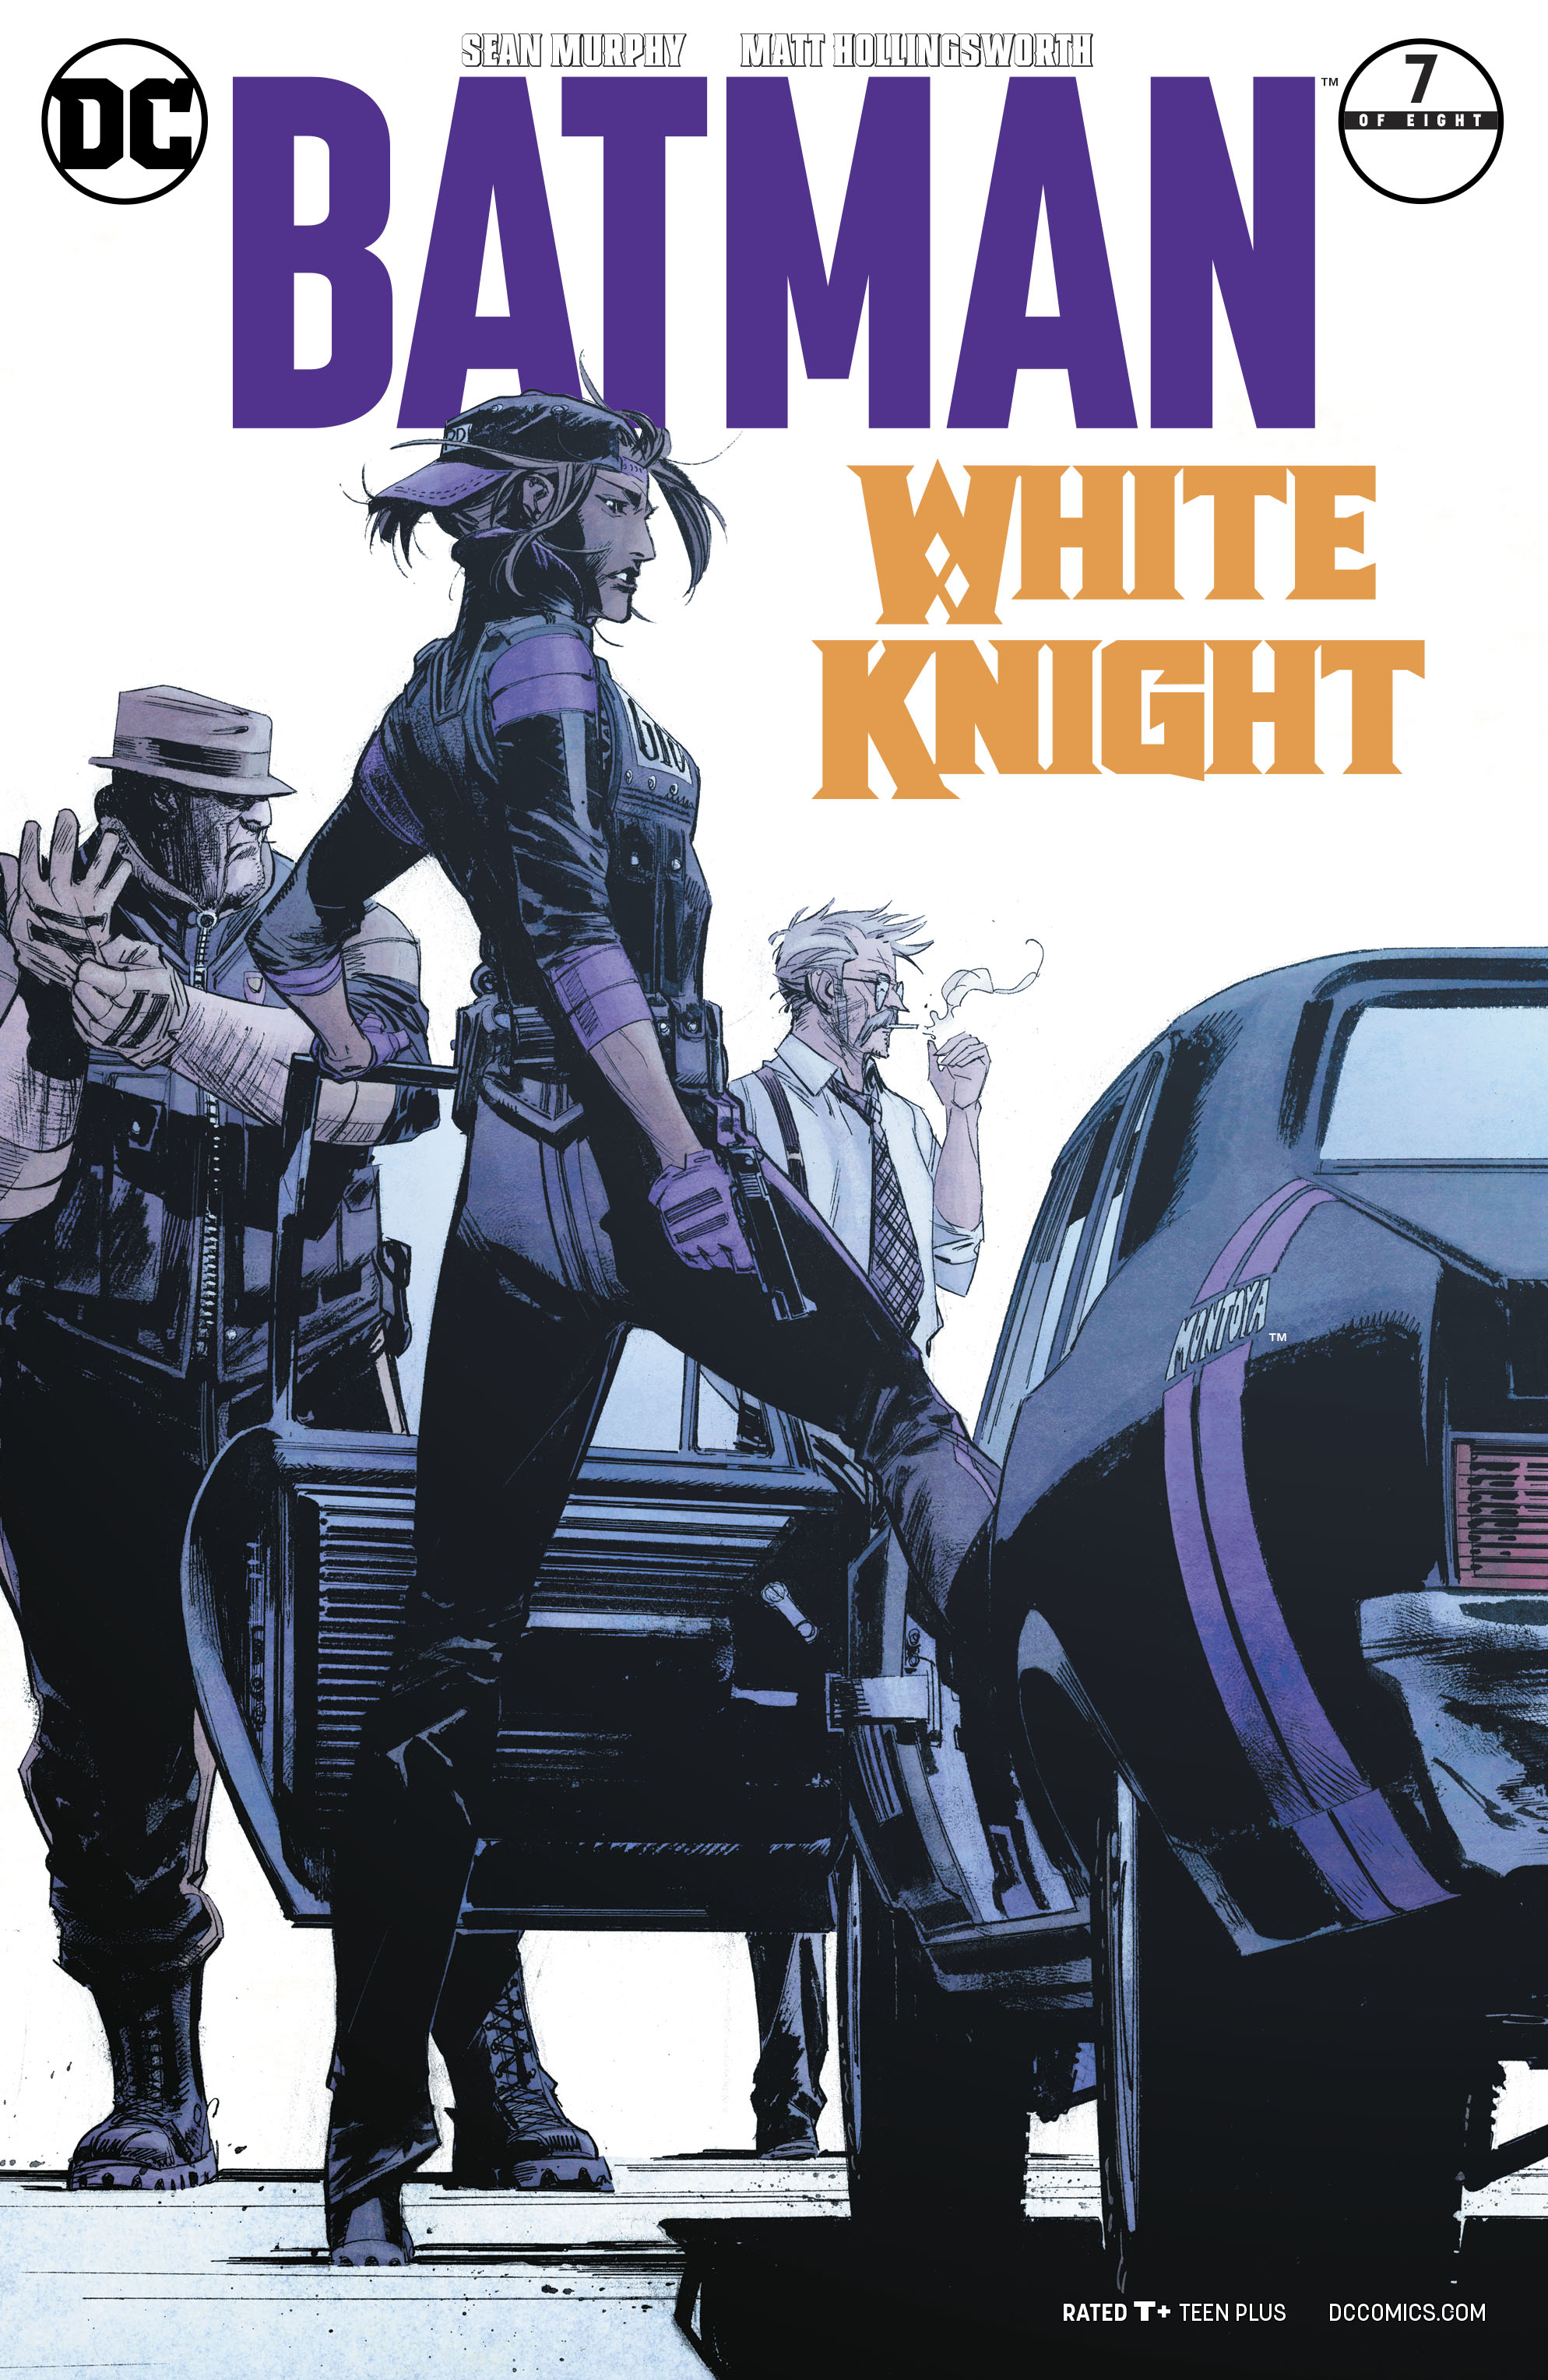 Batman White Knight Vol 1 7 Variant.jpg